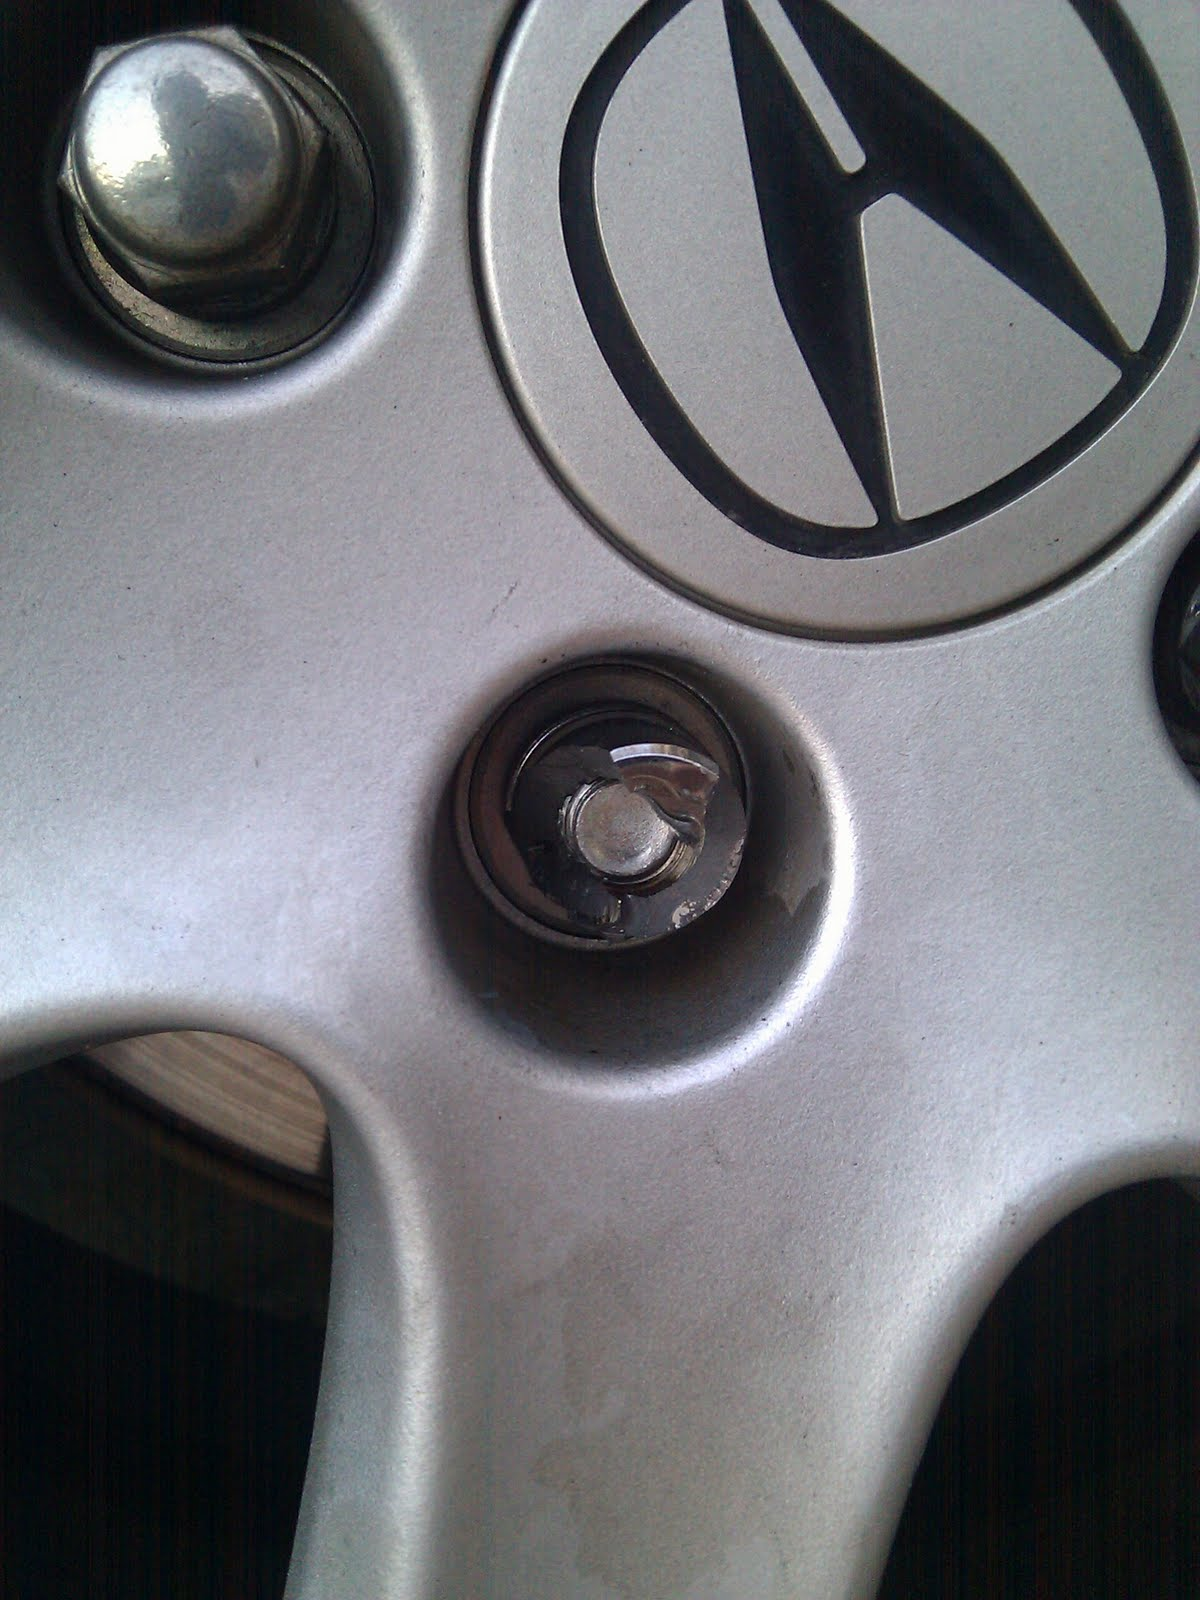 AboutAcura My Acura Wheel Lock Lug Broke - Acura wheel lock key